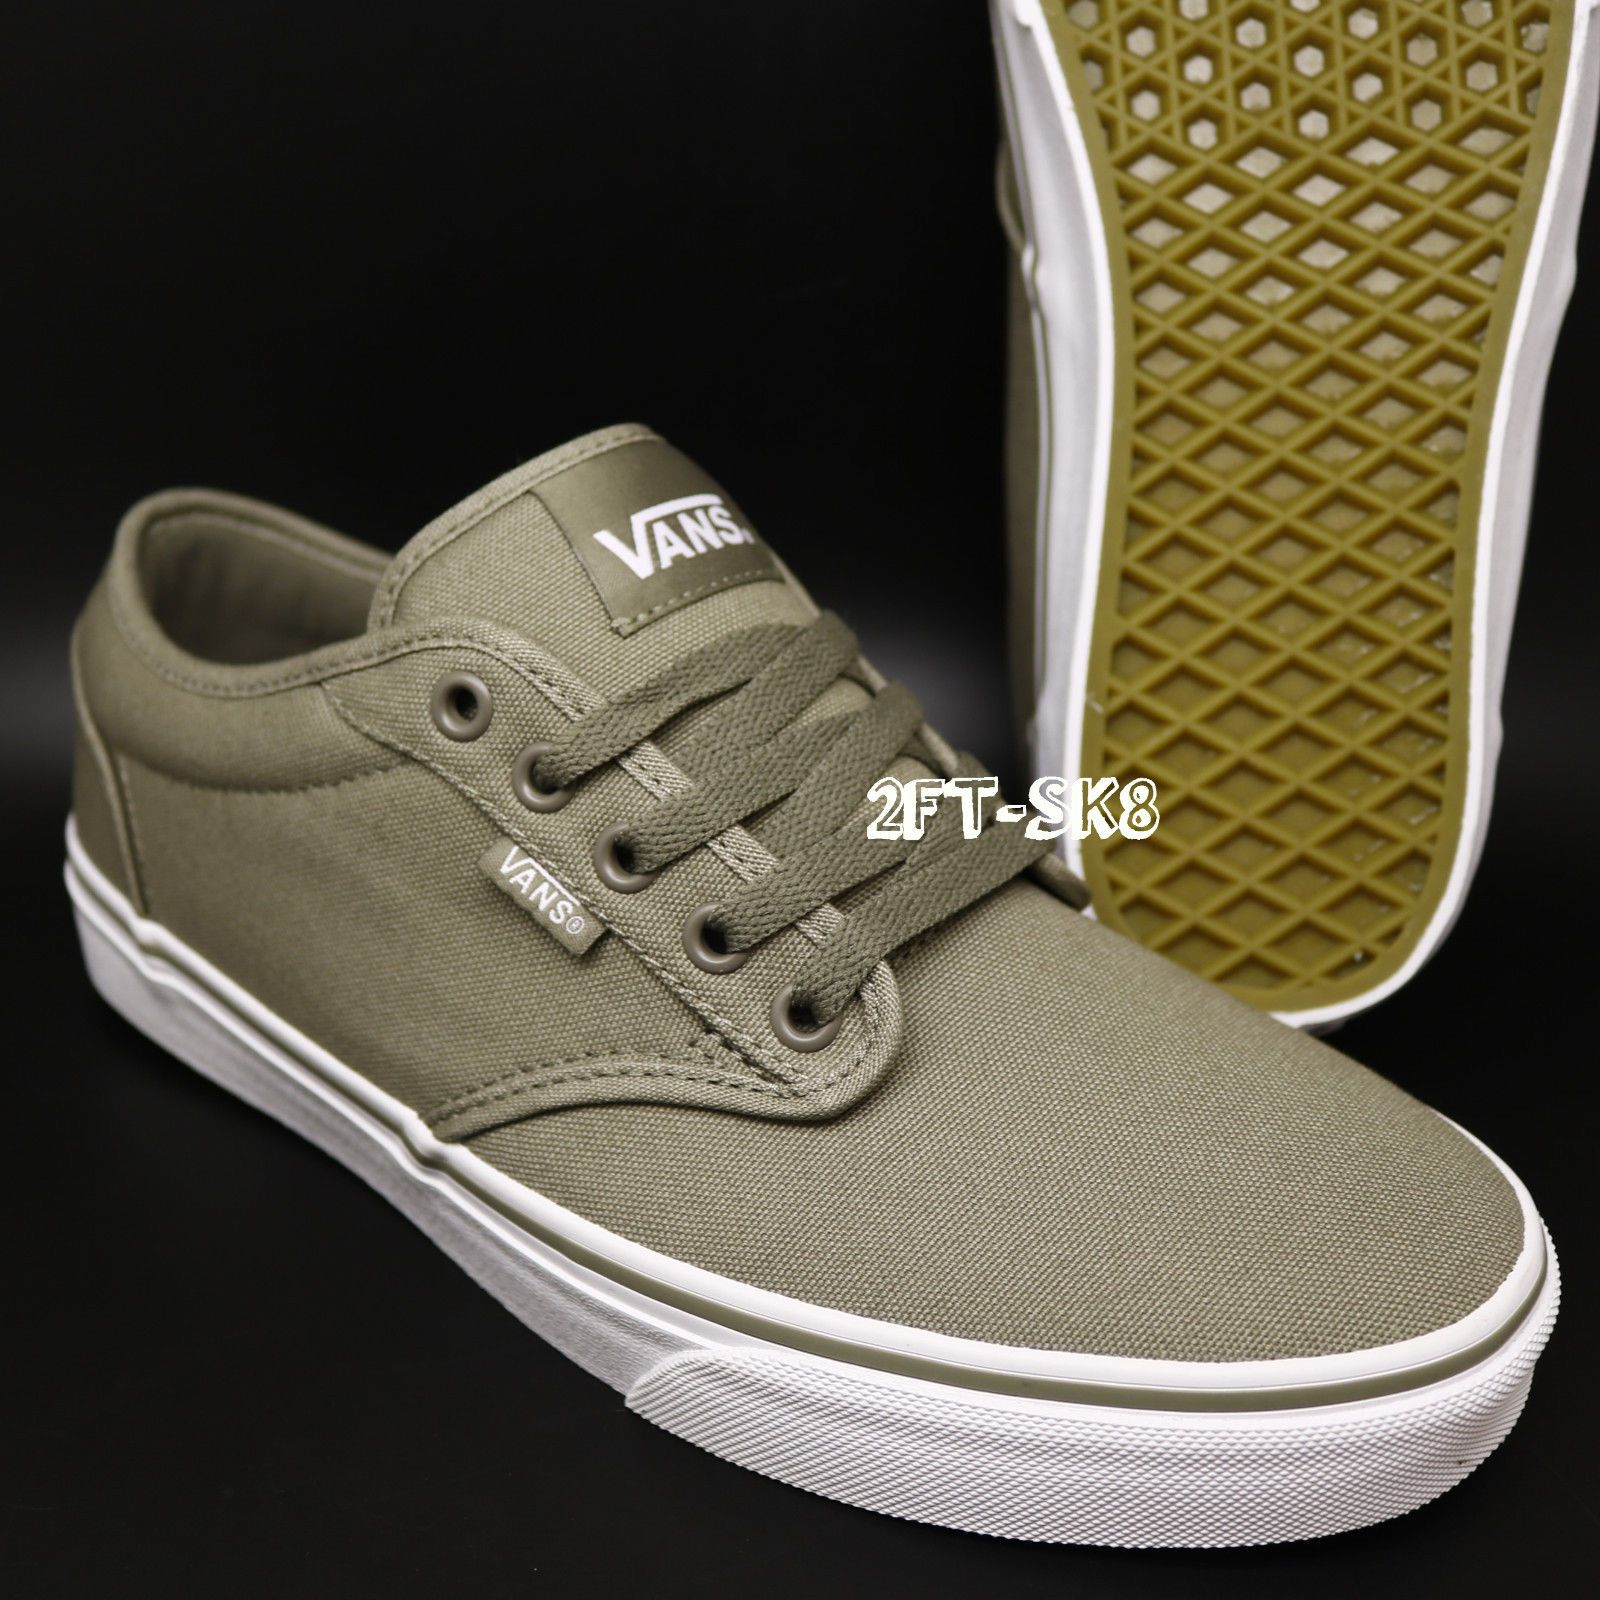 vans atwood checkers canvas shoes